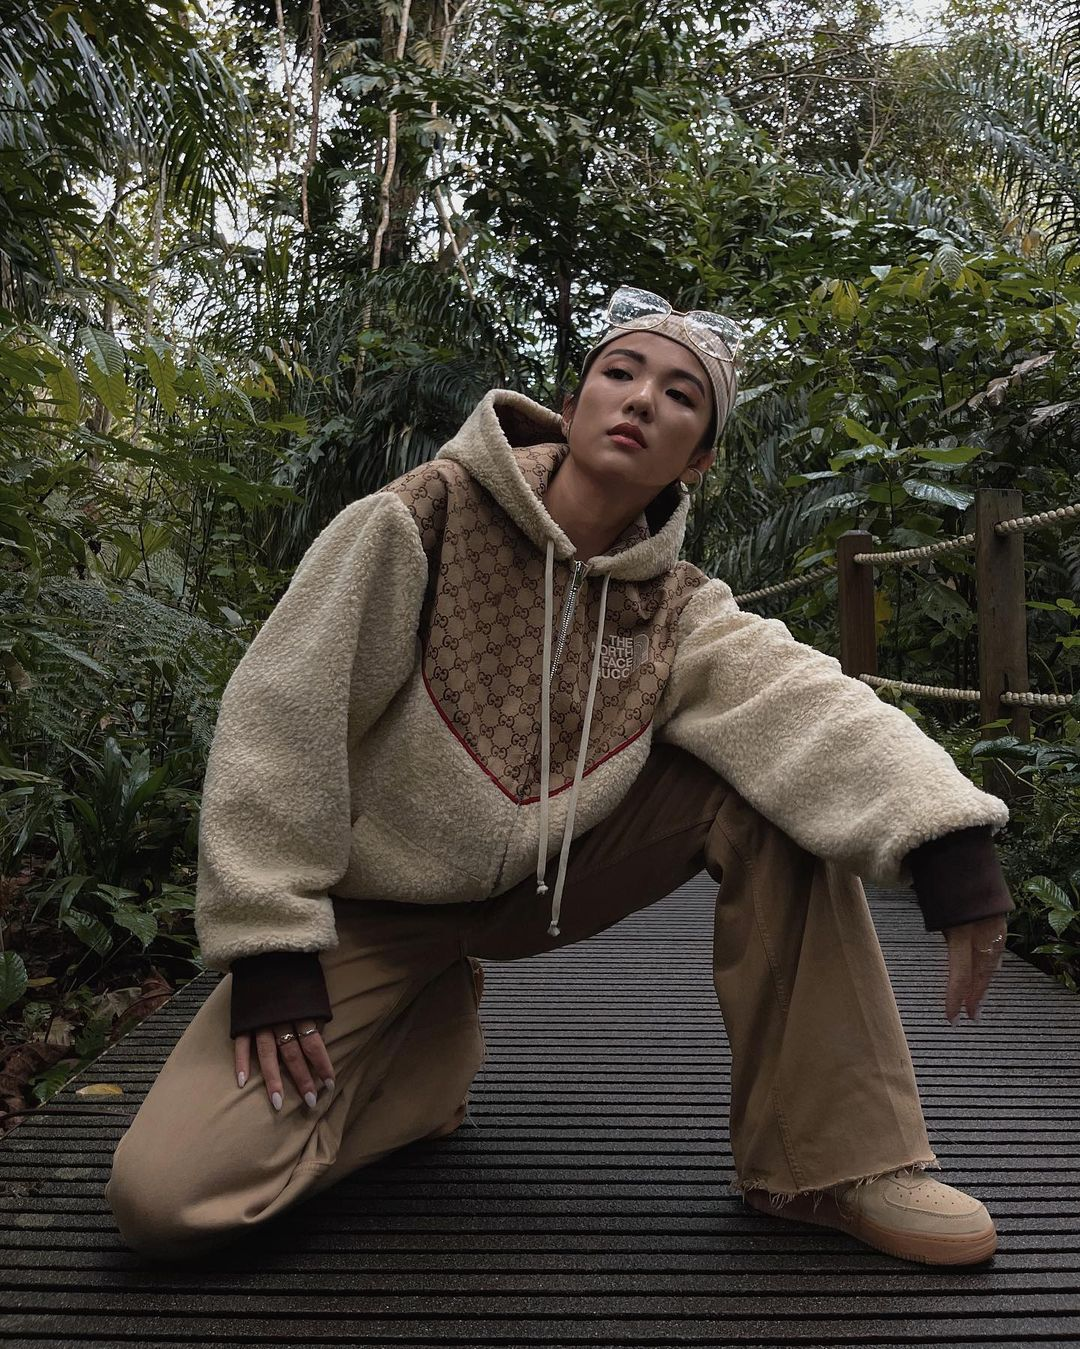 yoyo-cao-the-north-face-x-gucci-gg-canvas-and-shearling-jacket-instagram